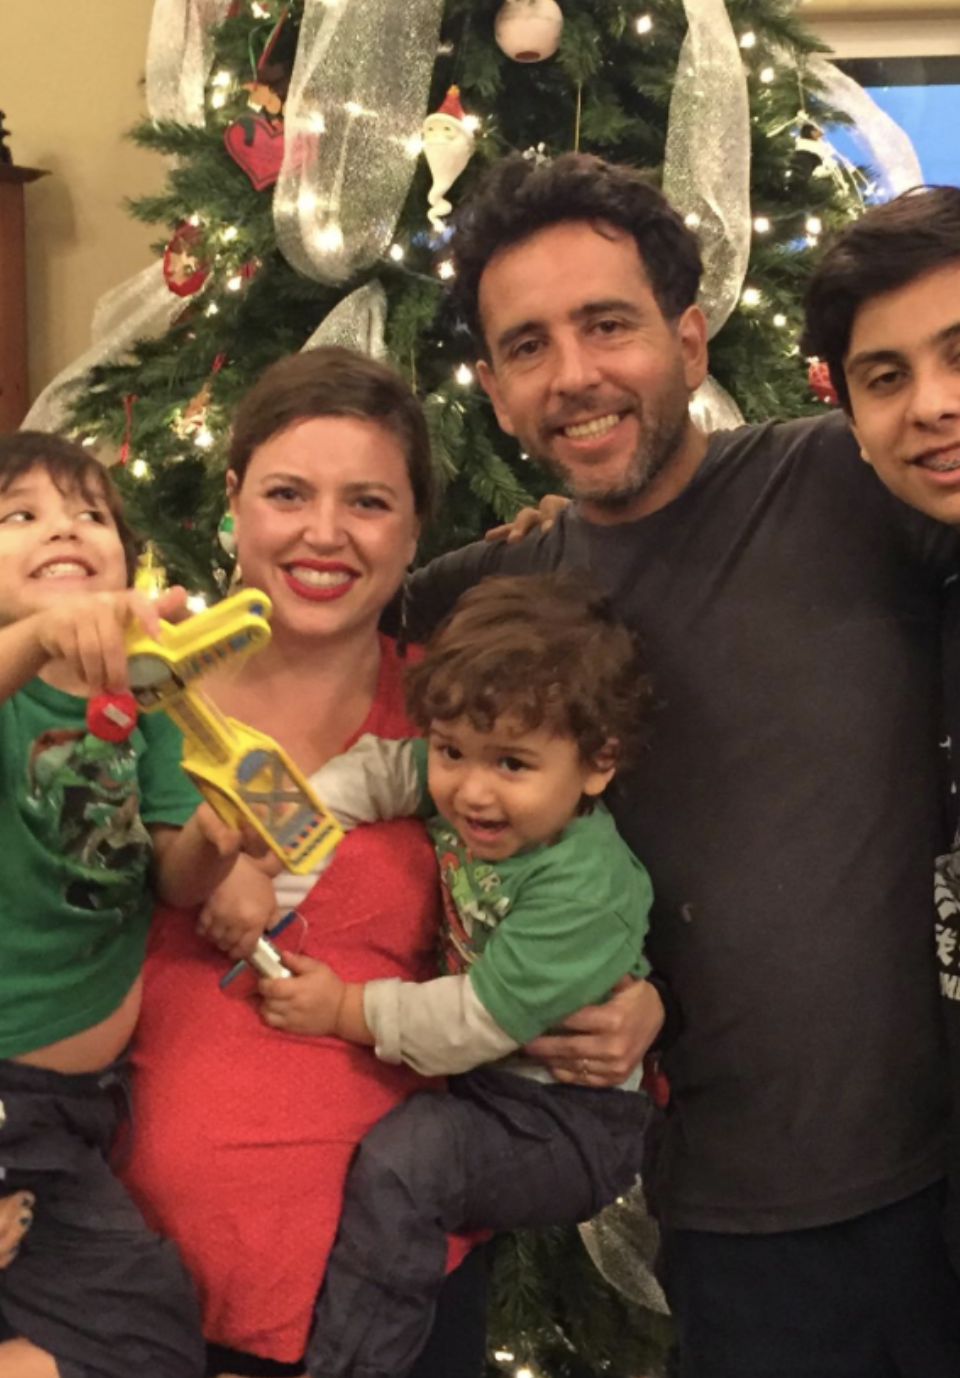 Our Founders… - In 2012, Cristian and Amanda founded Old Fashioned Photo Booth and had been operating it out of Austin.They recently moved to Lockhart and can now serve a larger area! In their free time they enjoy playing with their 3 boys and dog, Cacho.BOOK NOW →